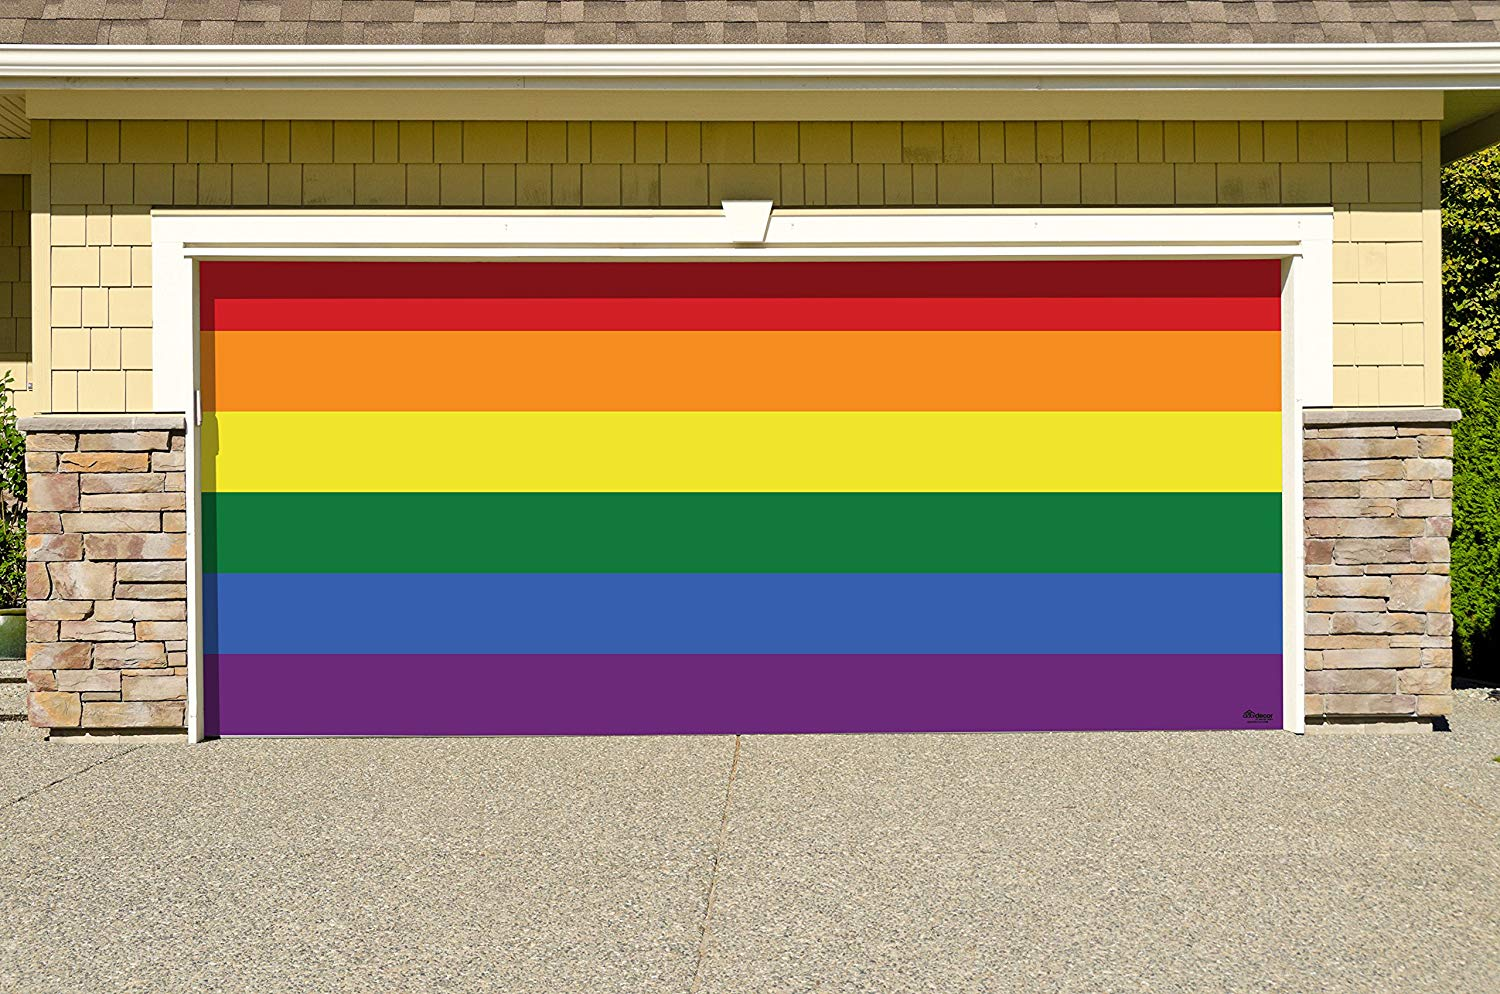 Victory Corps Original Pride - Outdoor PRIDE LGBT Garage Door Banner Mural Sign Décor 7'x 16' Car Garage -The Original Holiday Garage Door Banner Decor